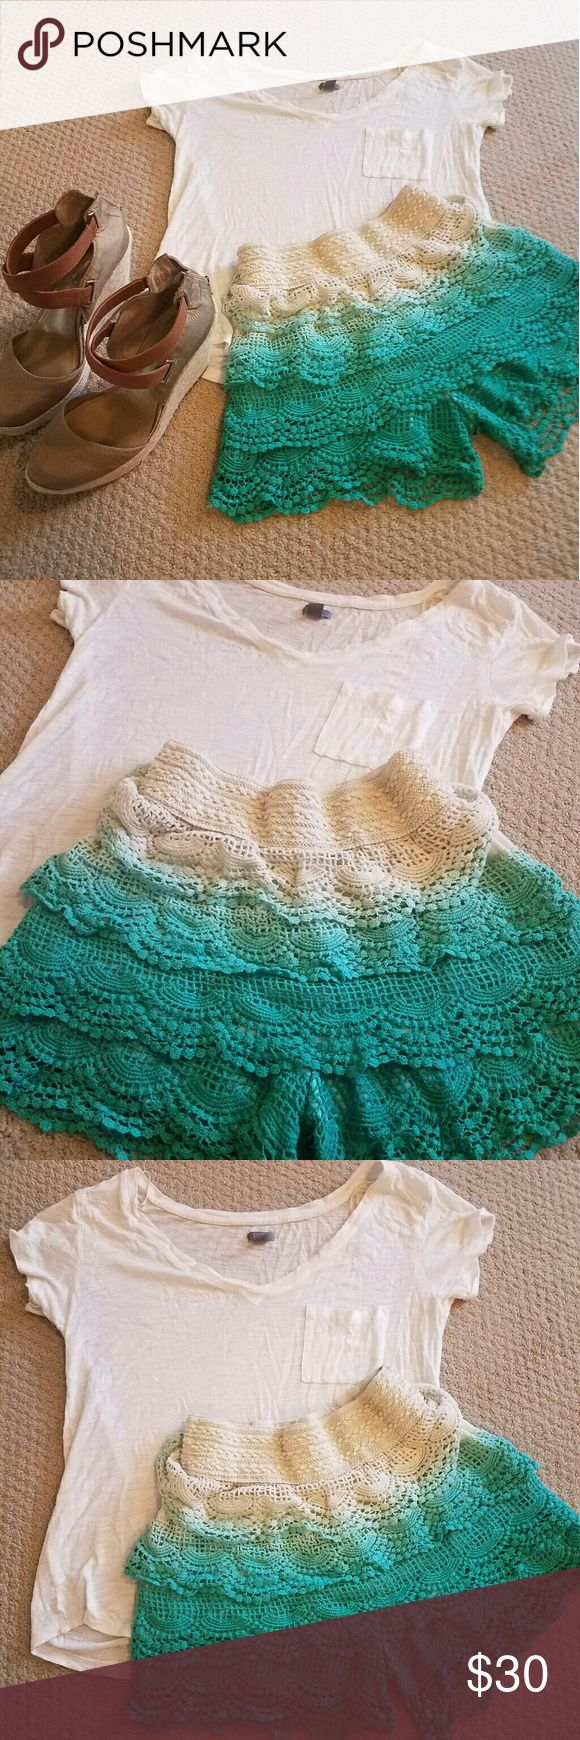 ☉Summer skort outfit☉ T-shirt by Aerie and ombre crochet teal shorts by Blue island. Shoes not included. Stretchy material aerie Other